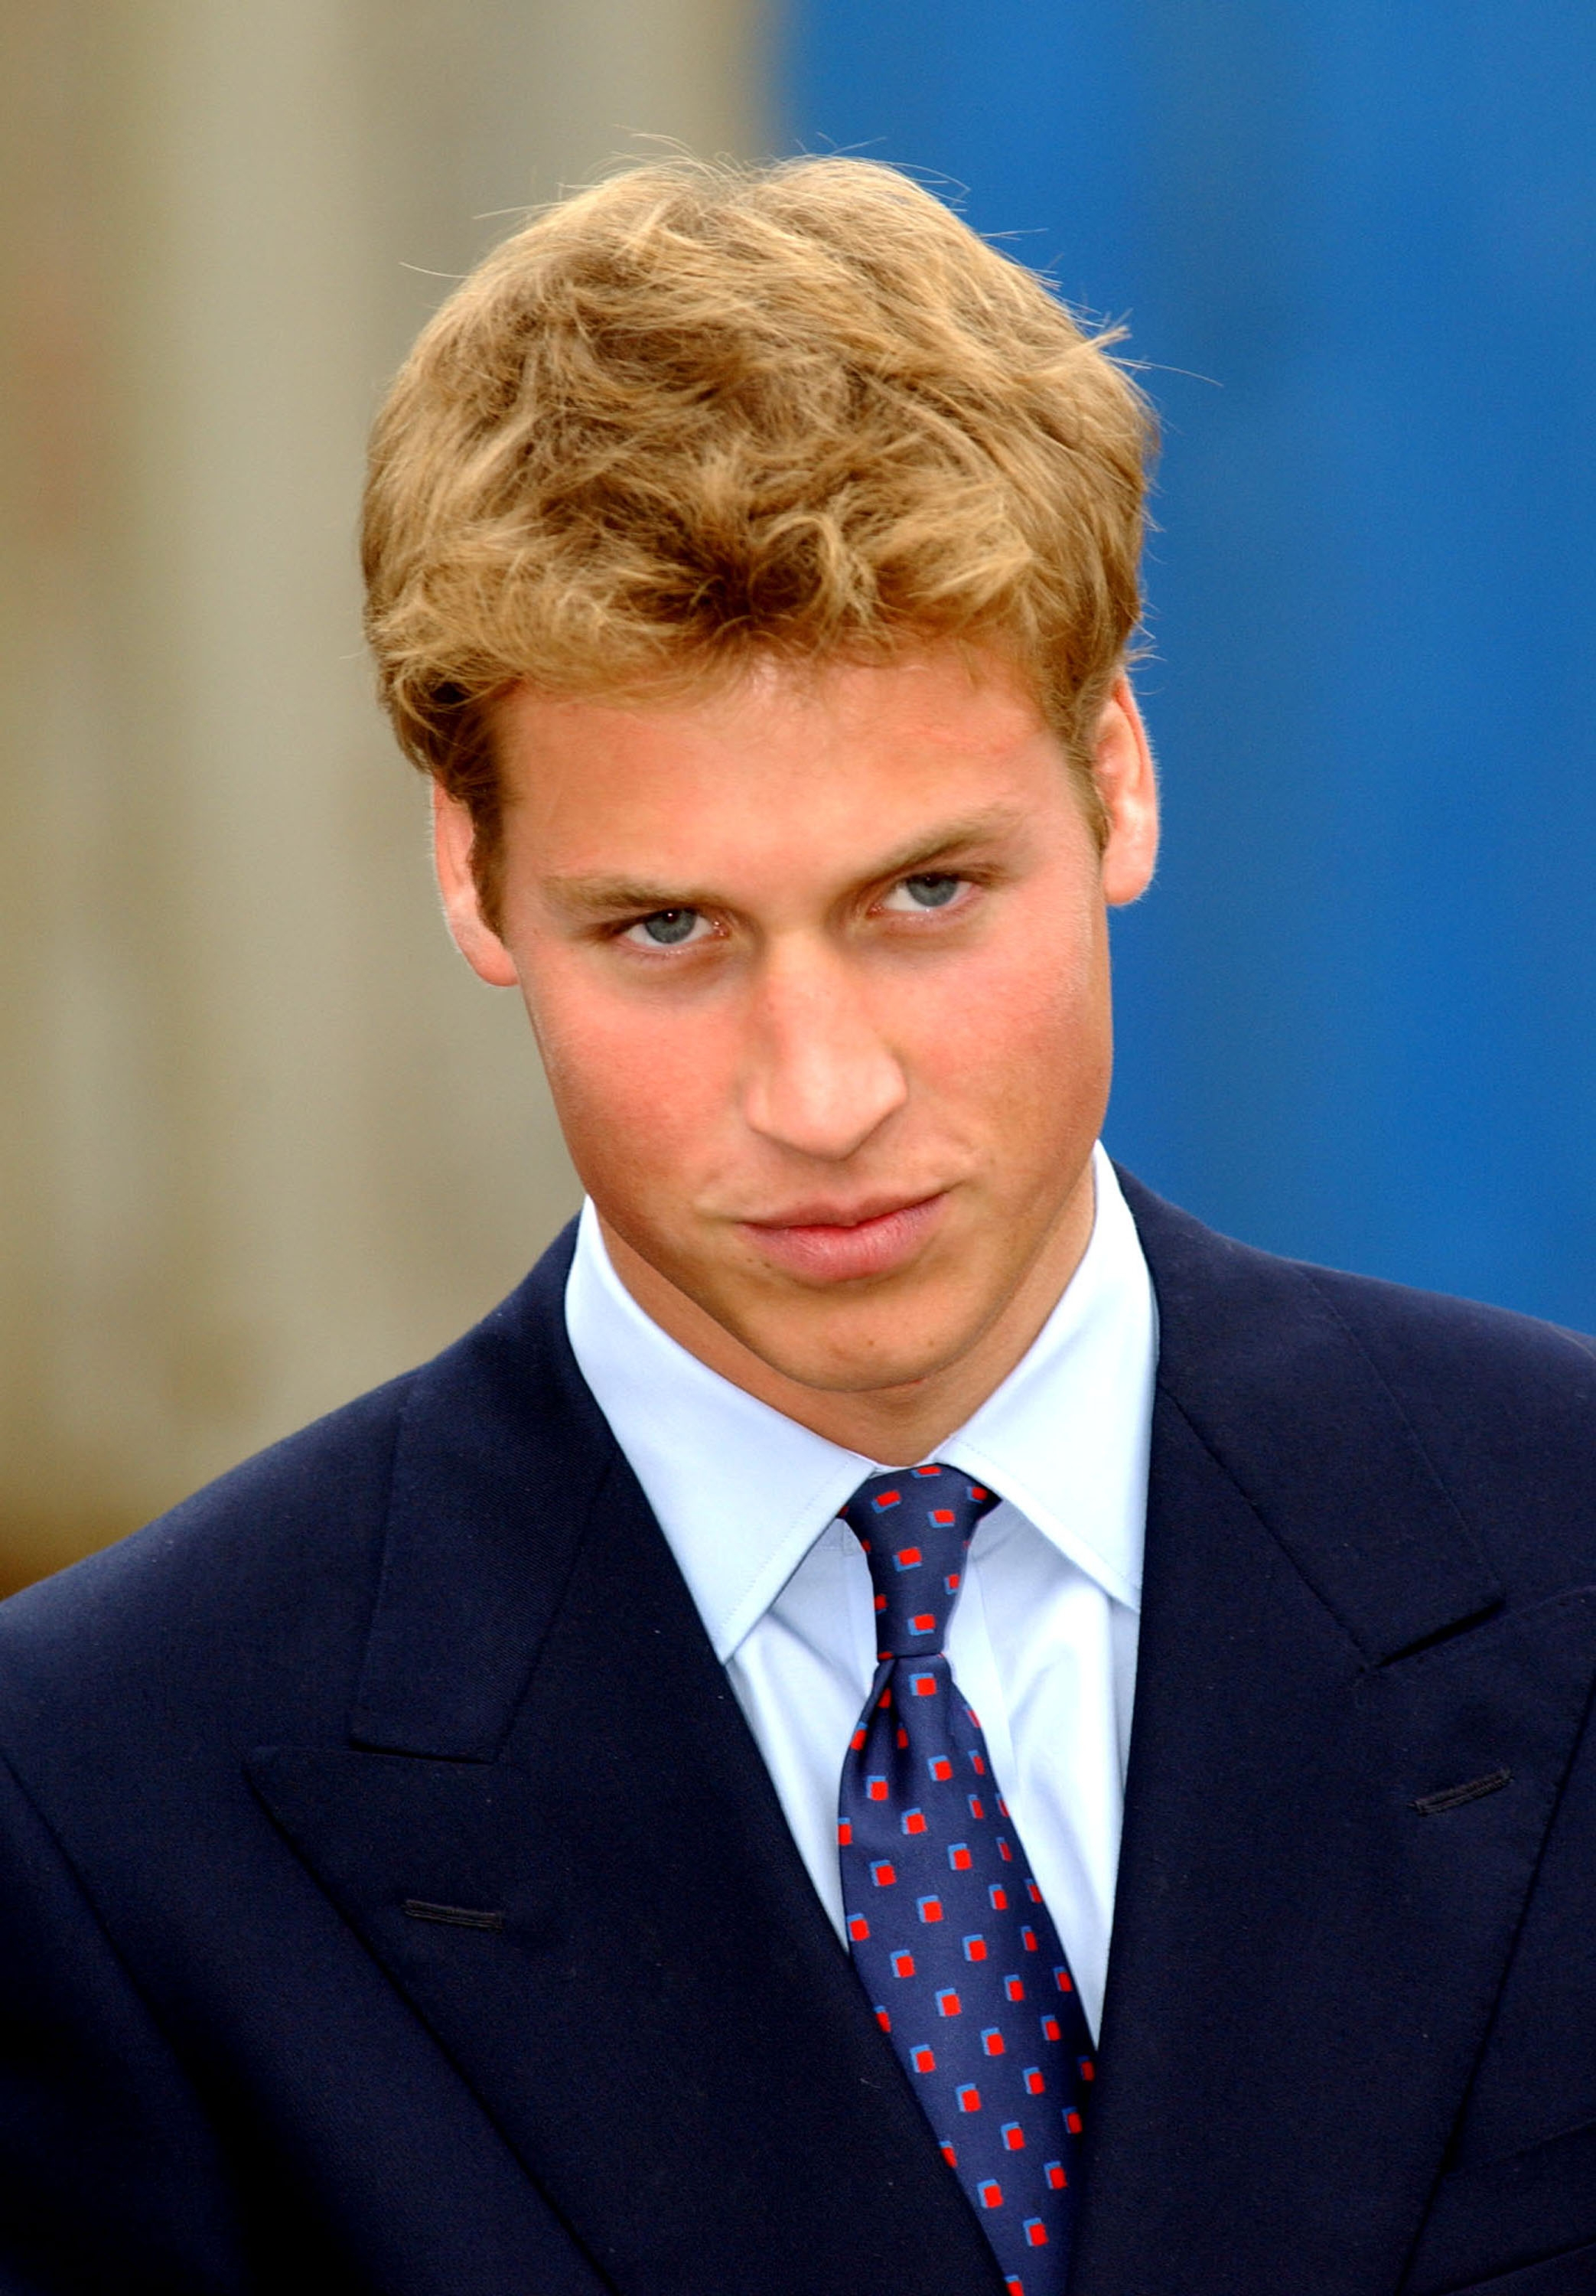 Prince William High Quality Wallpapers For Iphone